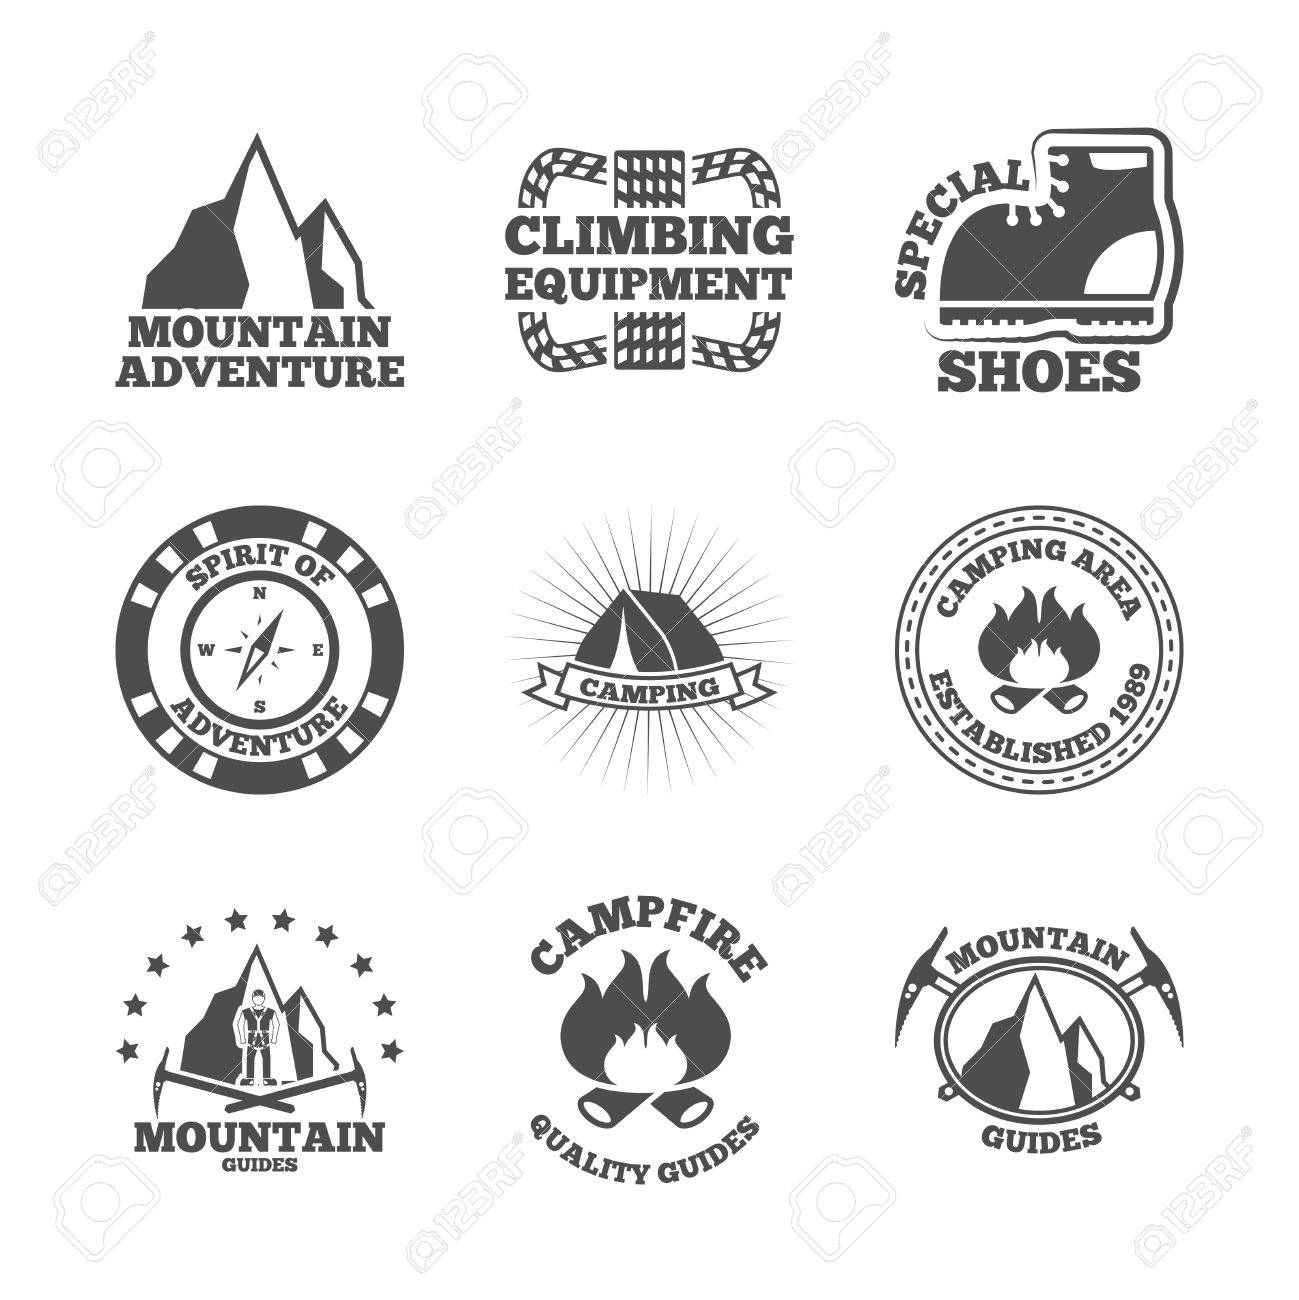 Mountains Climbing Equipment Quide And Camping Area Adventures Black Labels Emblems Icon Set Abstract Isolated Vector